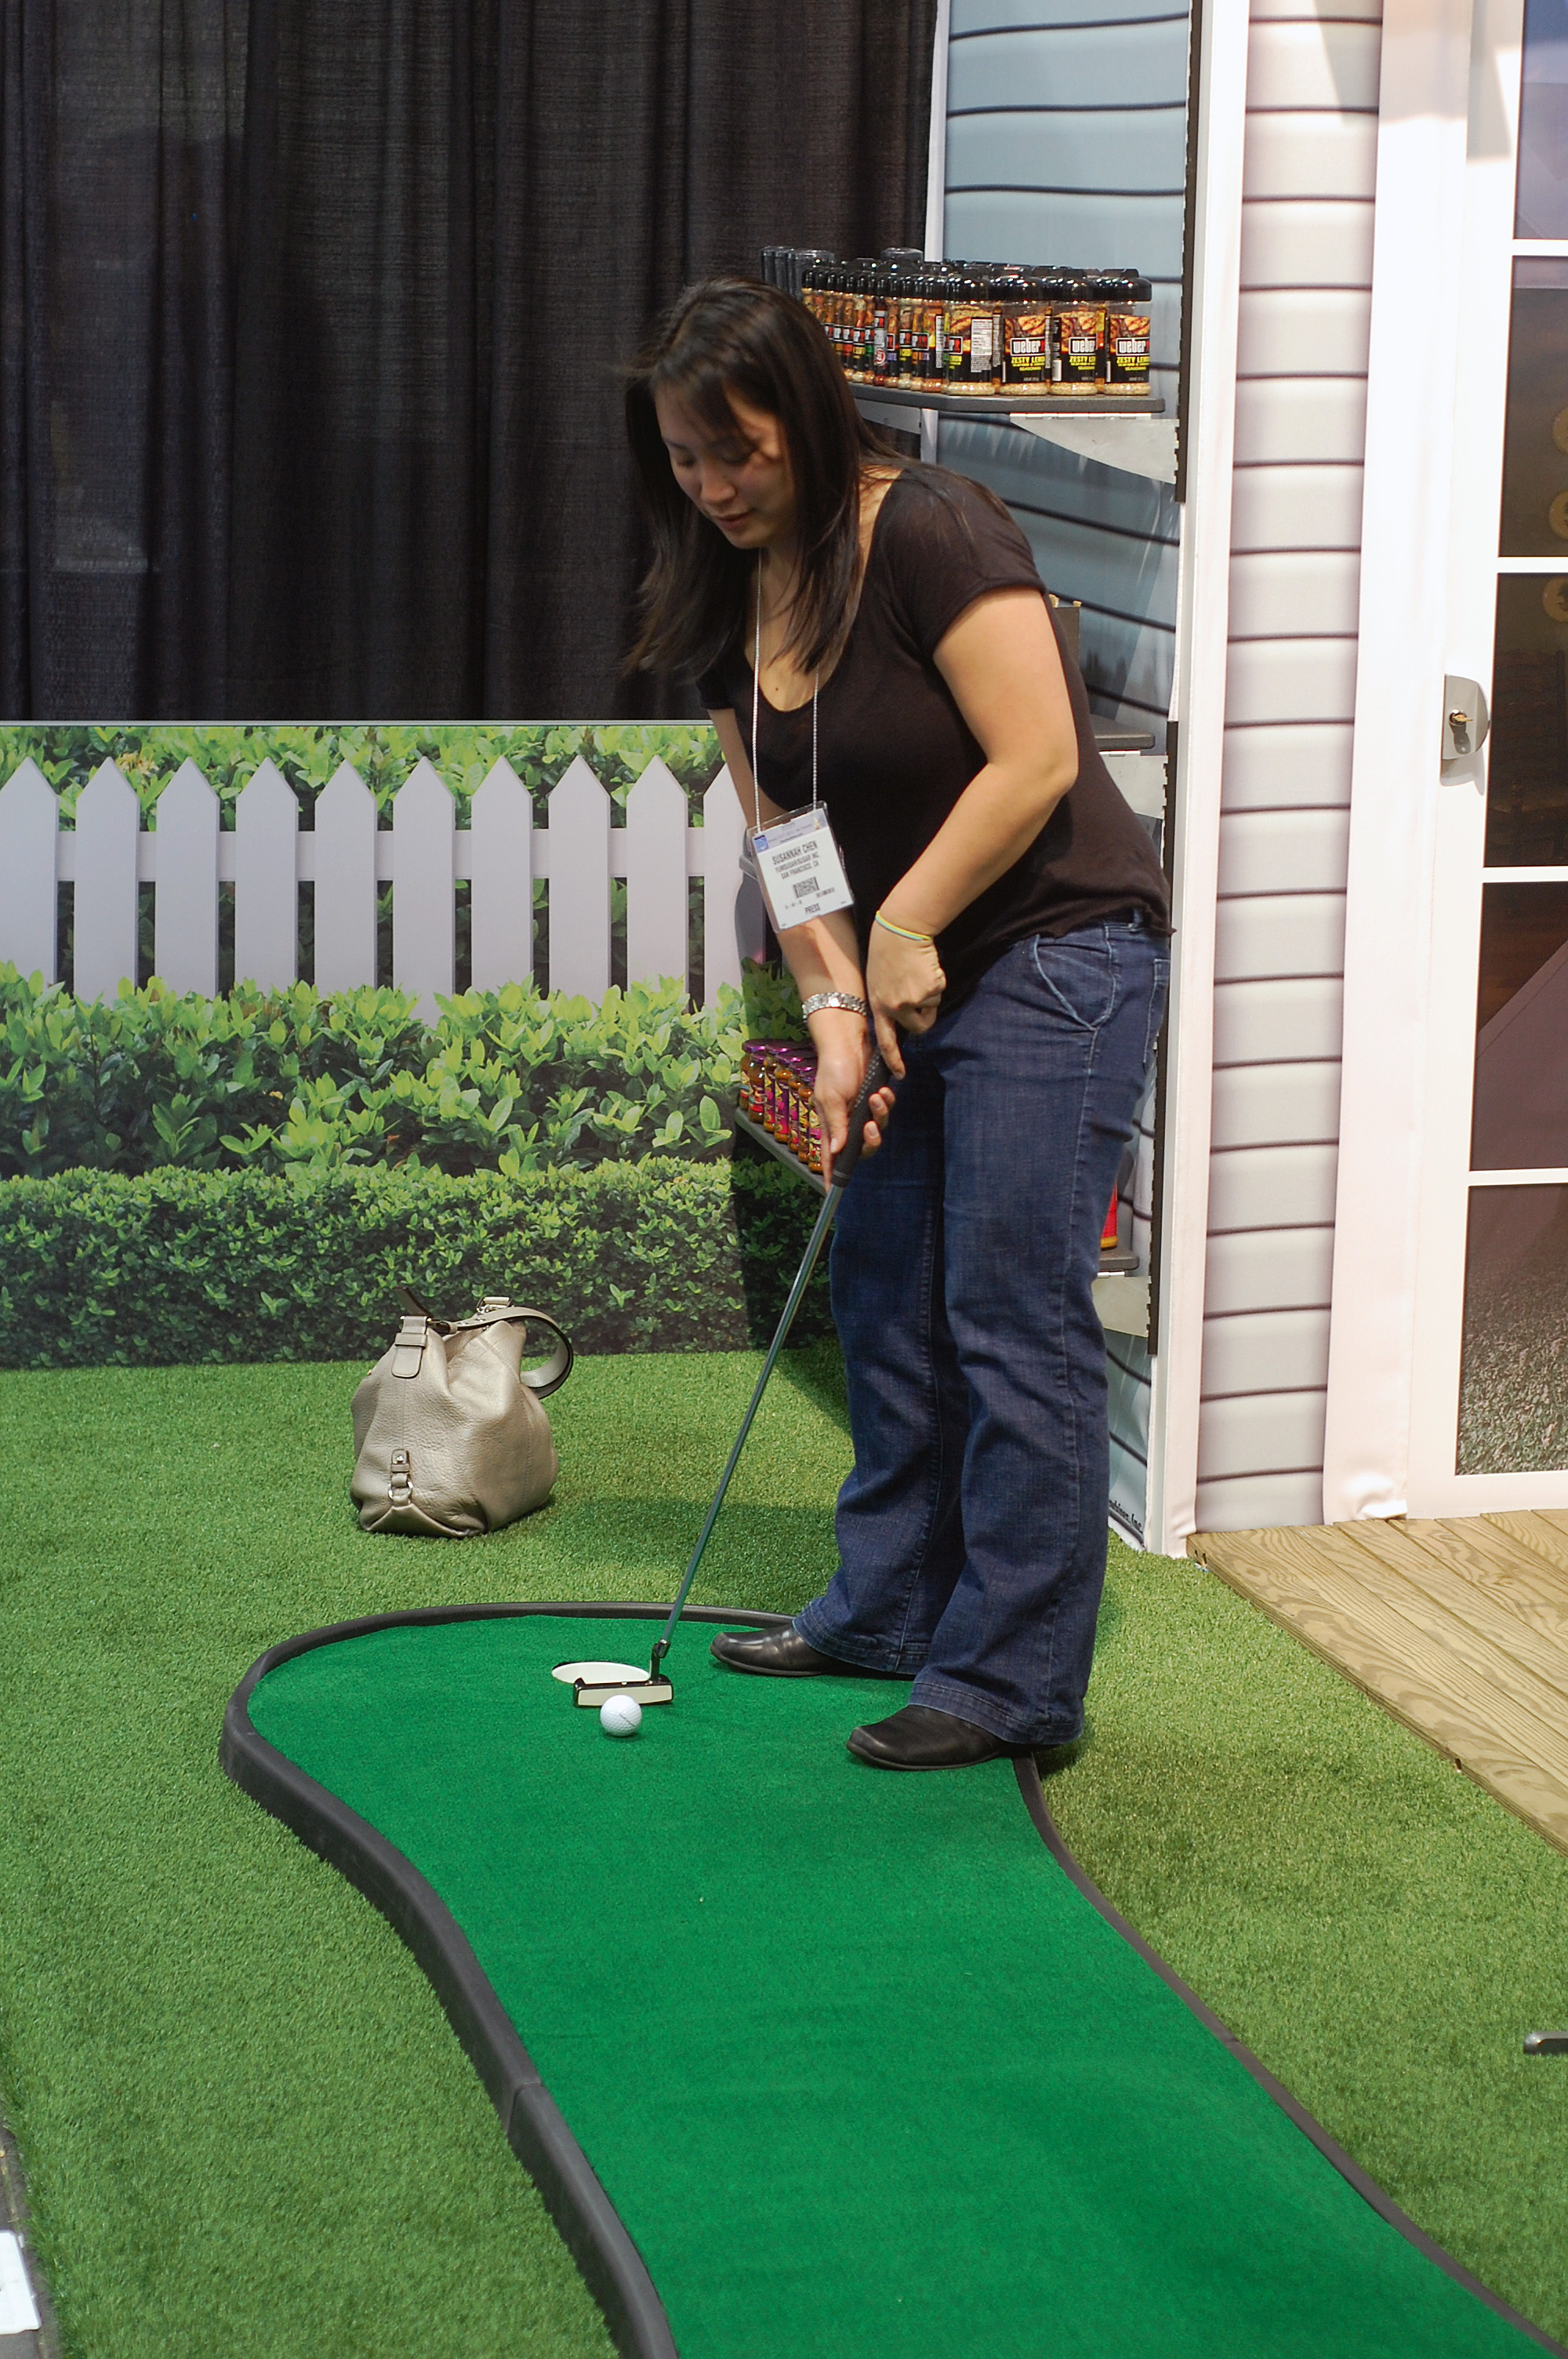 Mini Golf at a Food Show